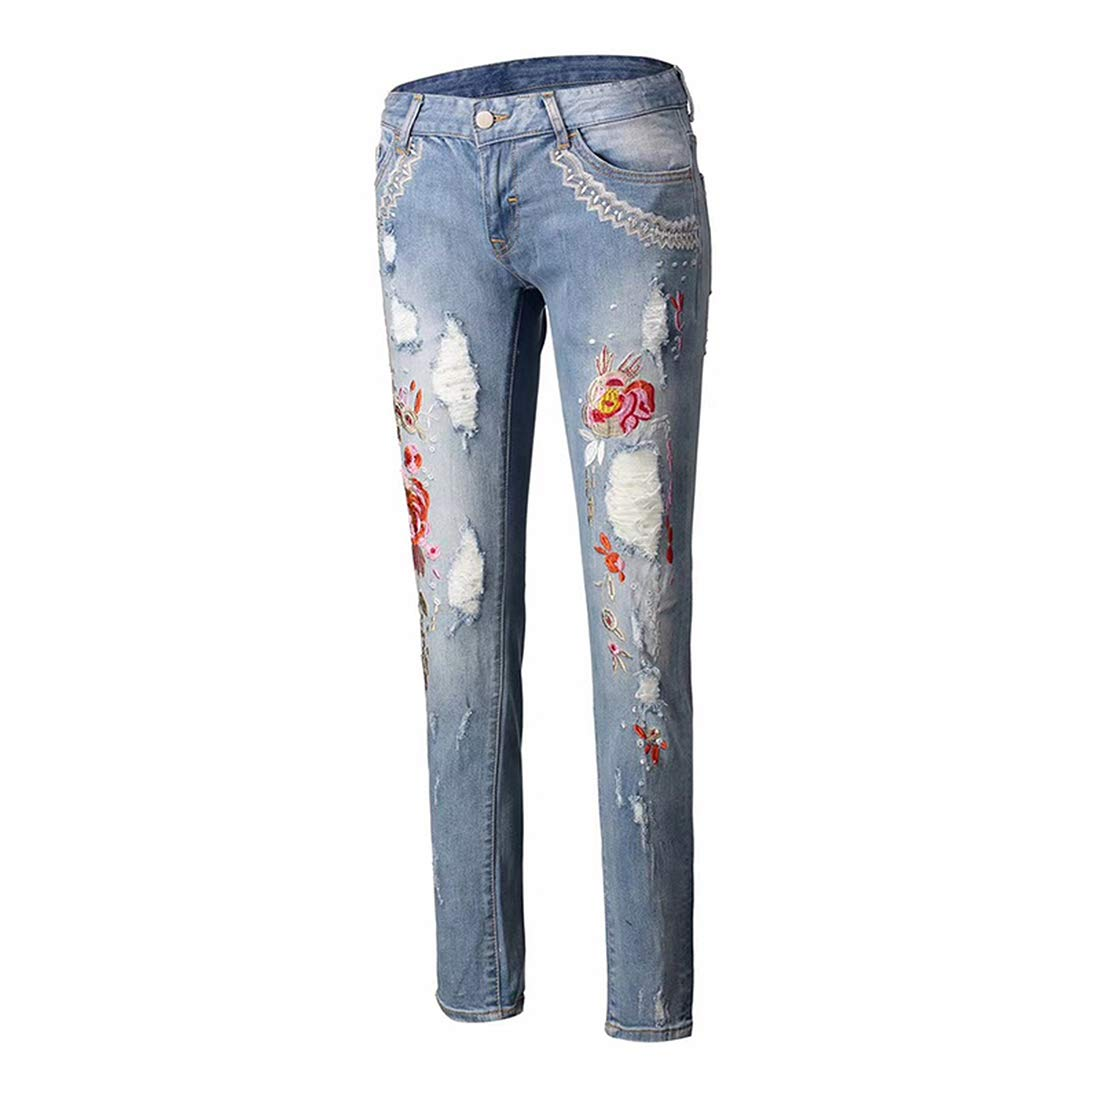 Summer Floral Embroidery Jeans Female Ethnic Autumn Casual Flower Embroidered Jeans Ladies Blue Hot Top